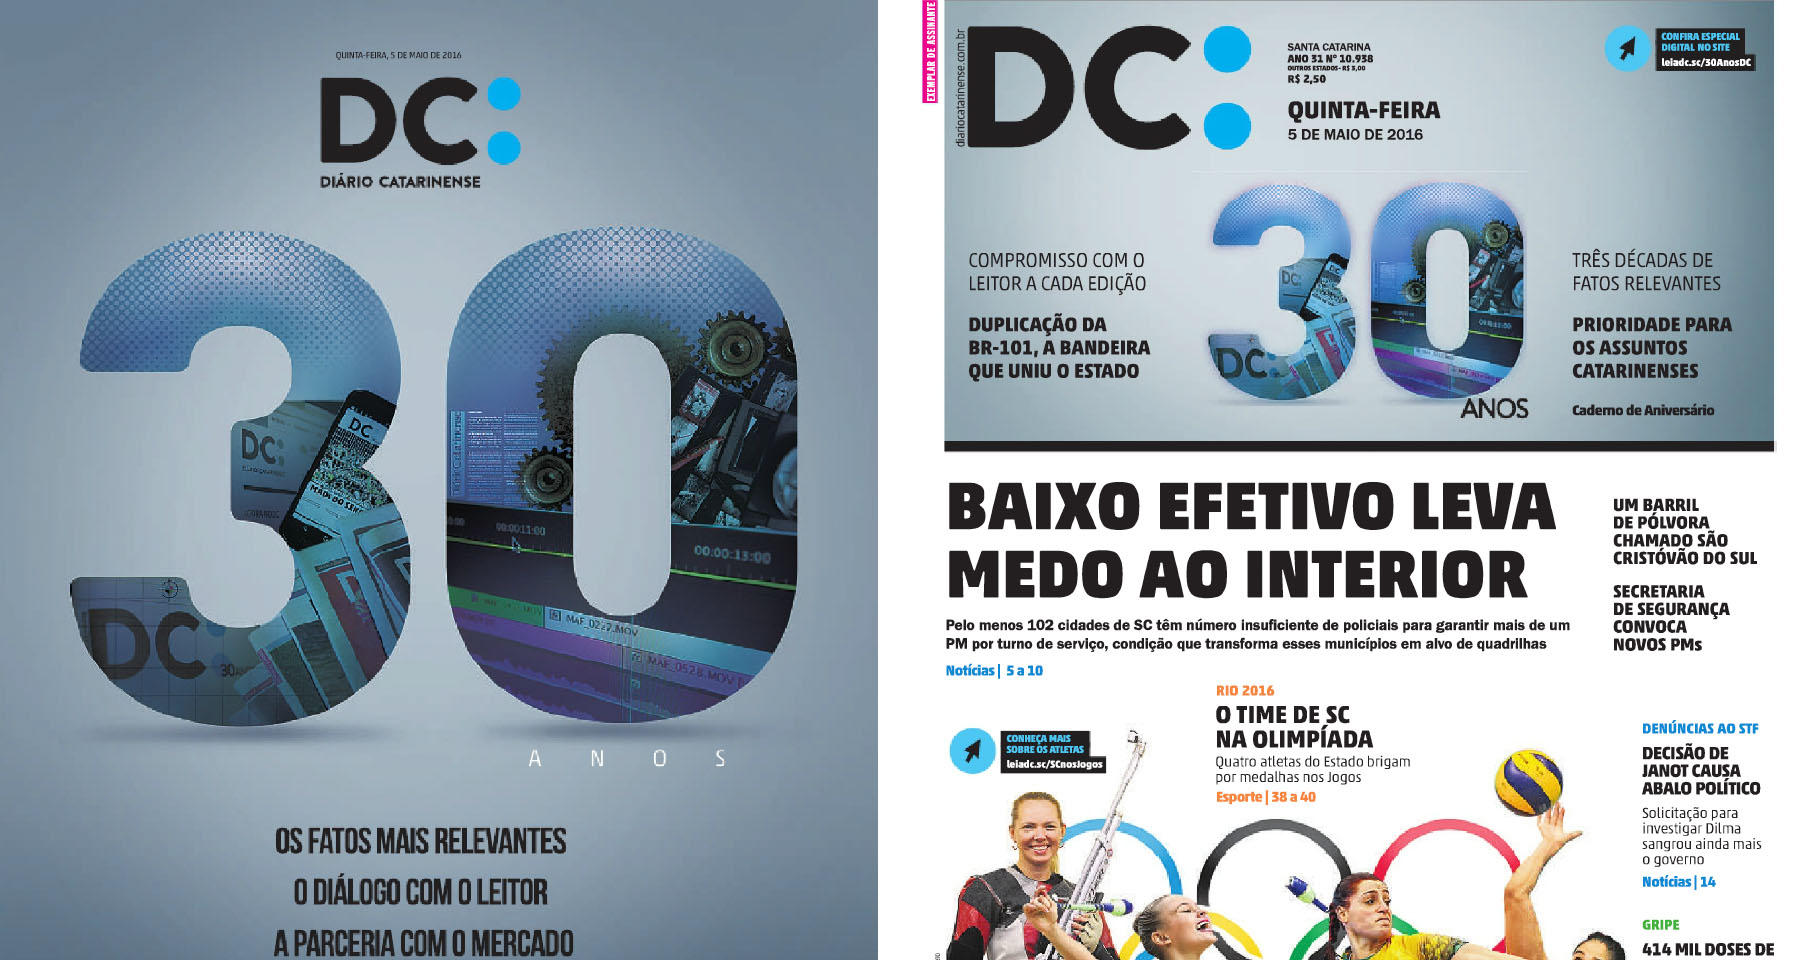 Diário Catarinense celebrates 30 years with research-based re-branding